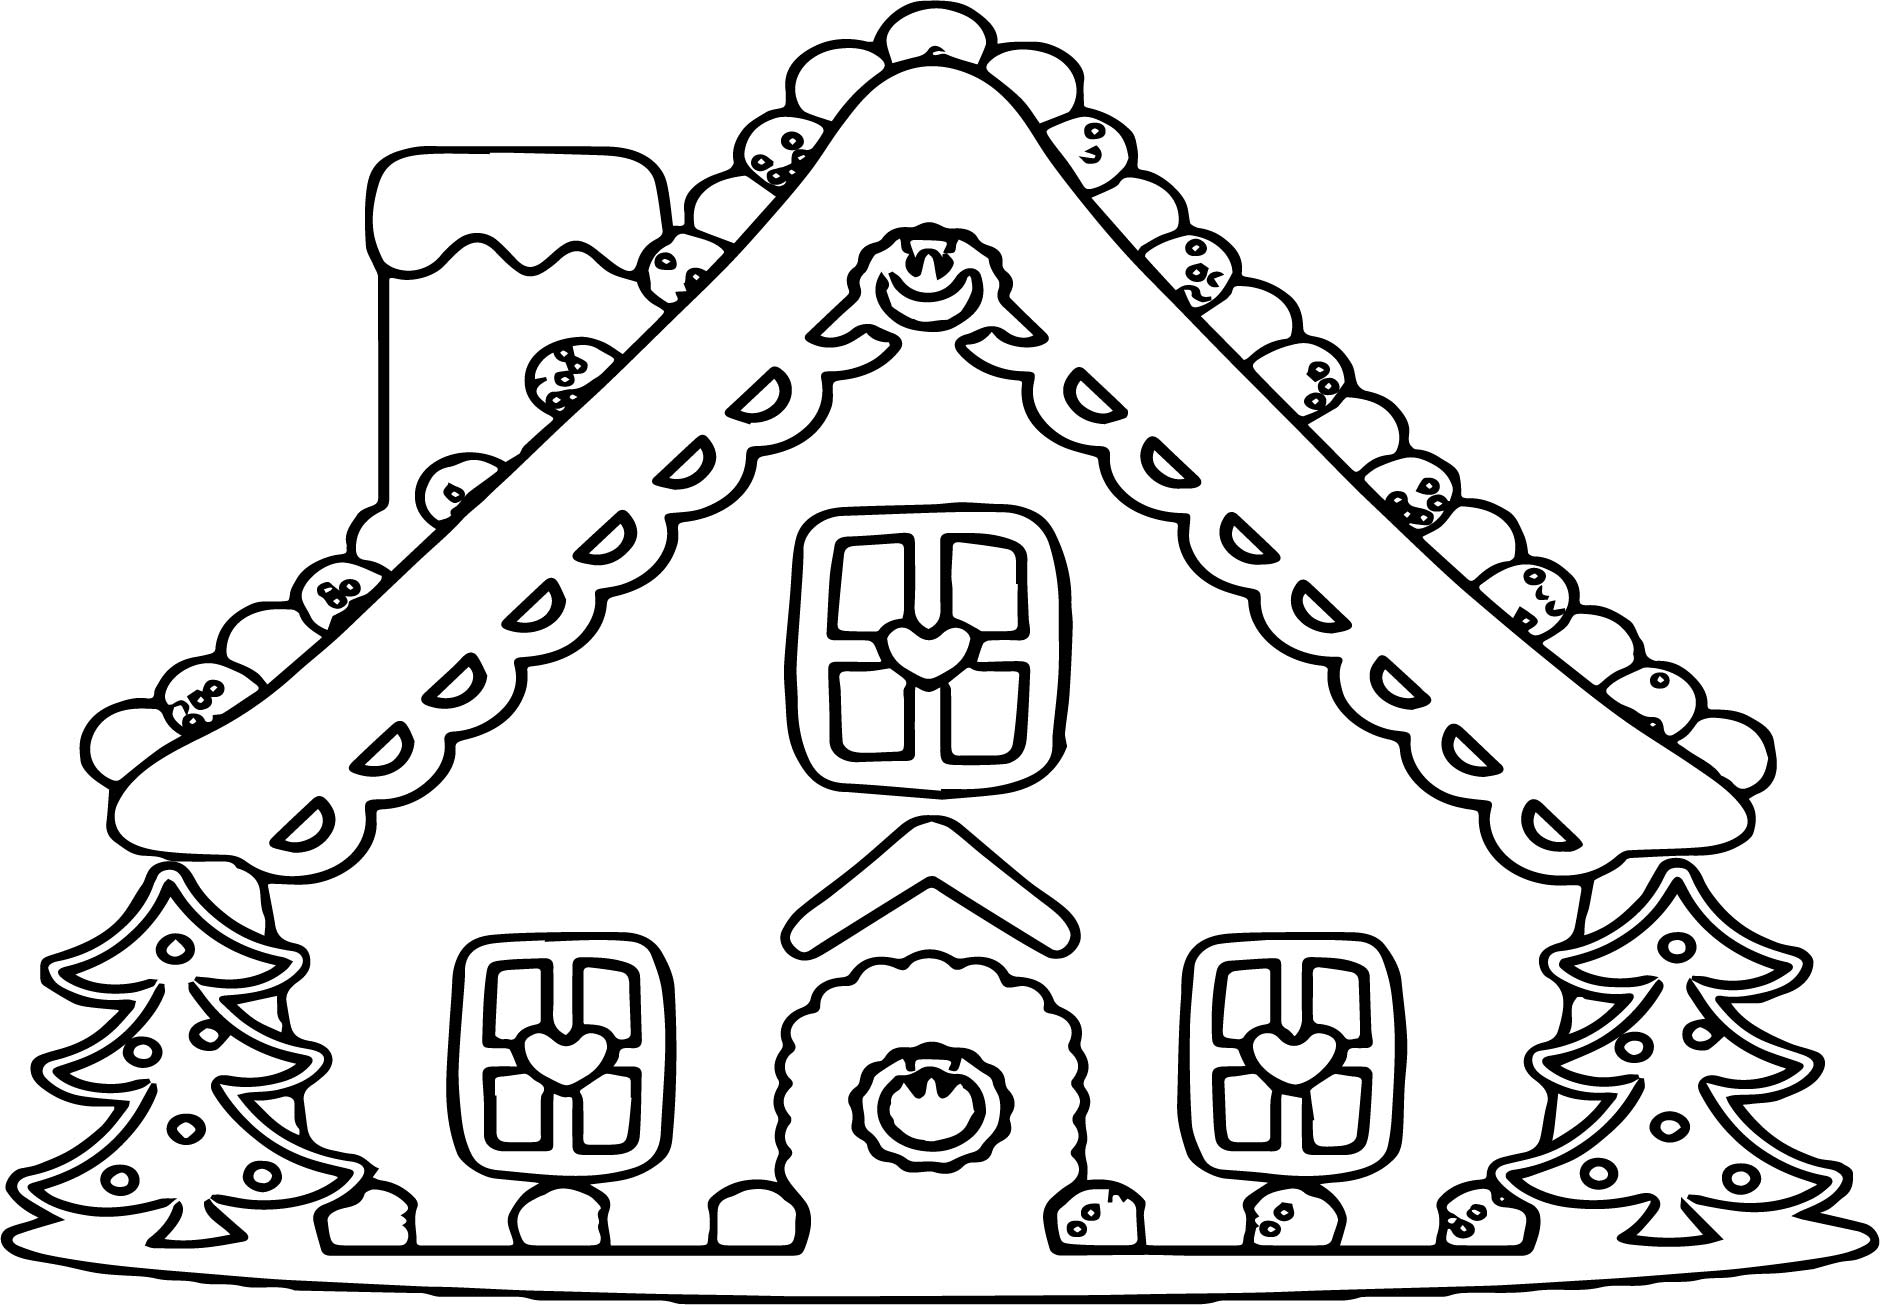 Gingerbread Coloring Pages Incredible Design Ideas Gingerbread House Coloring Pages Printable